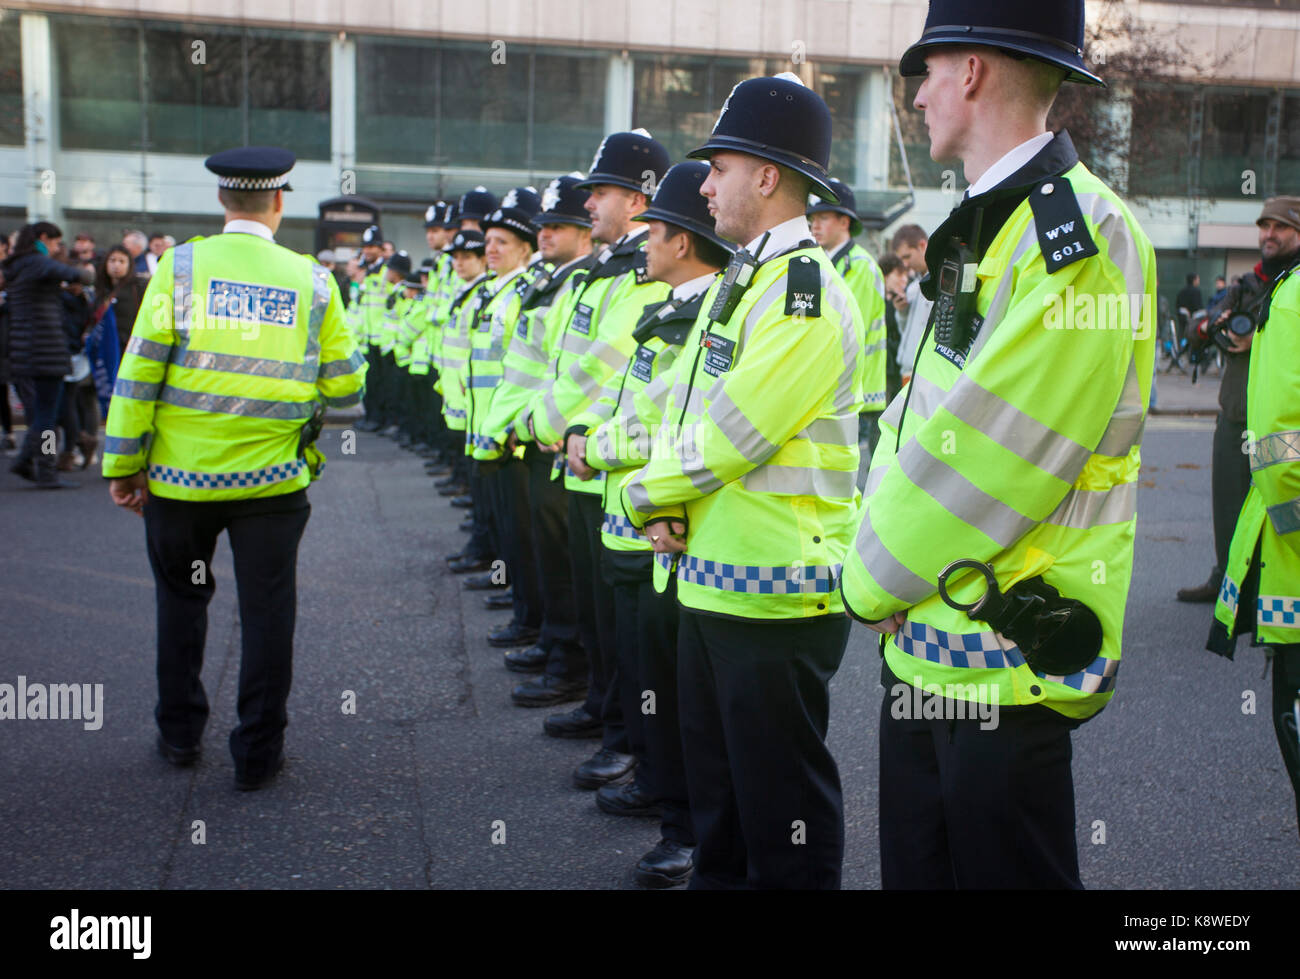 Metropolitan police and the public during an anti-austerity march. - Stock Image